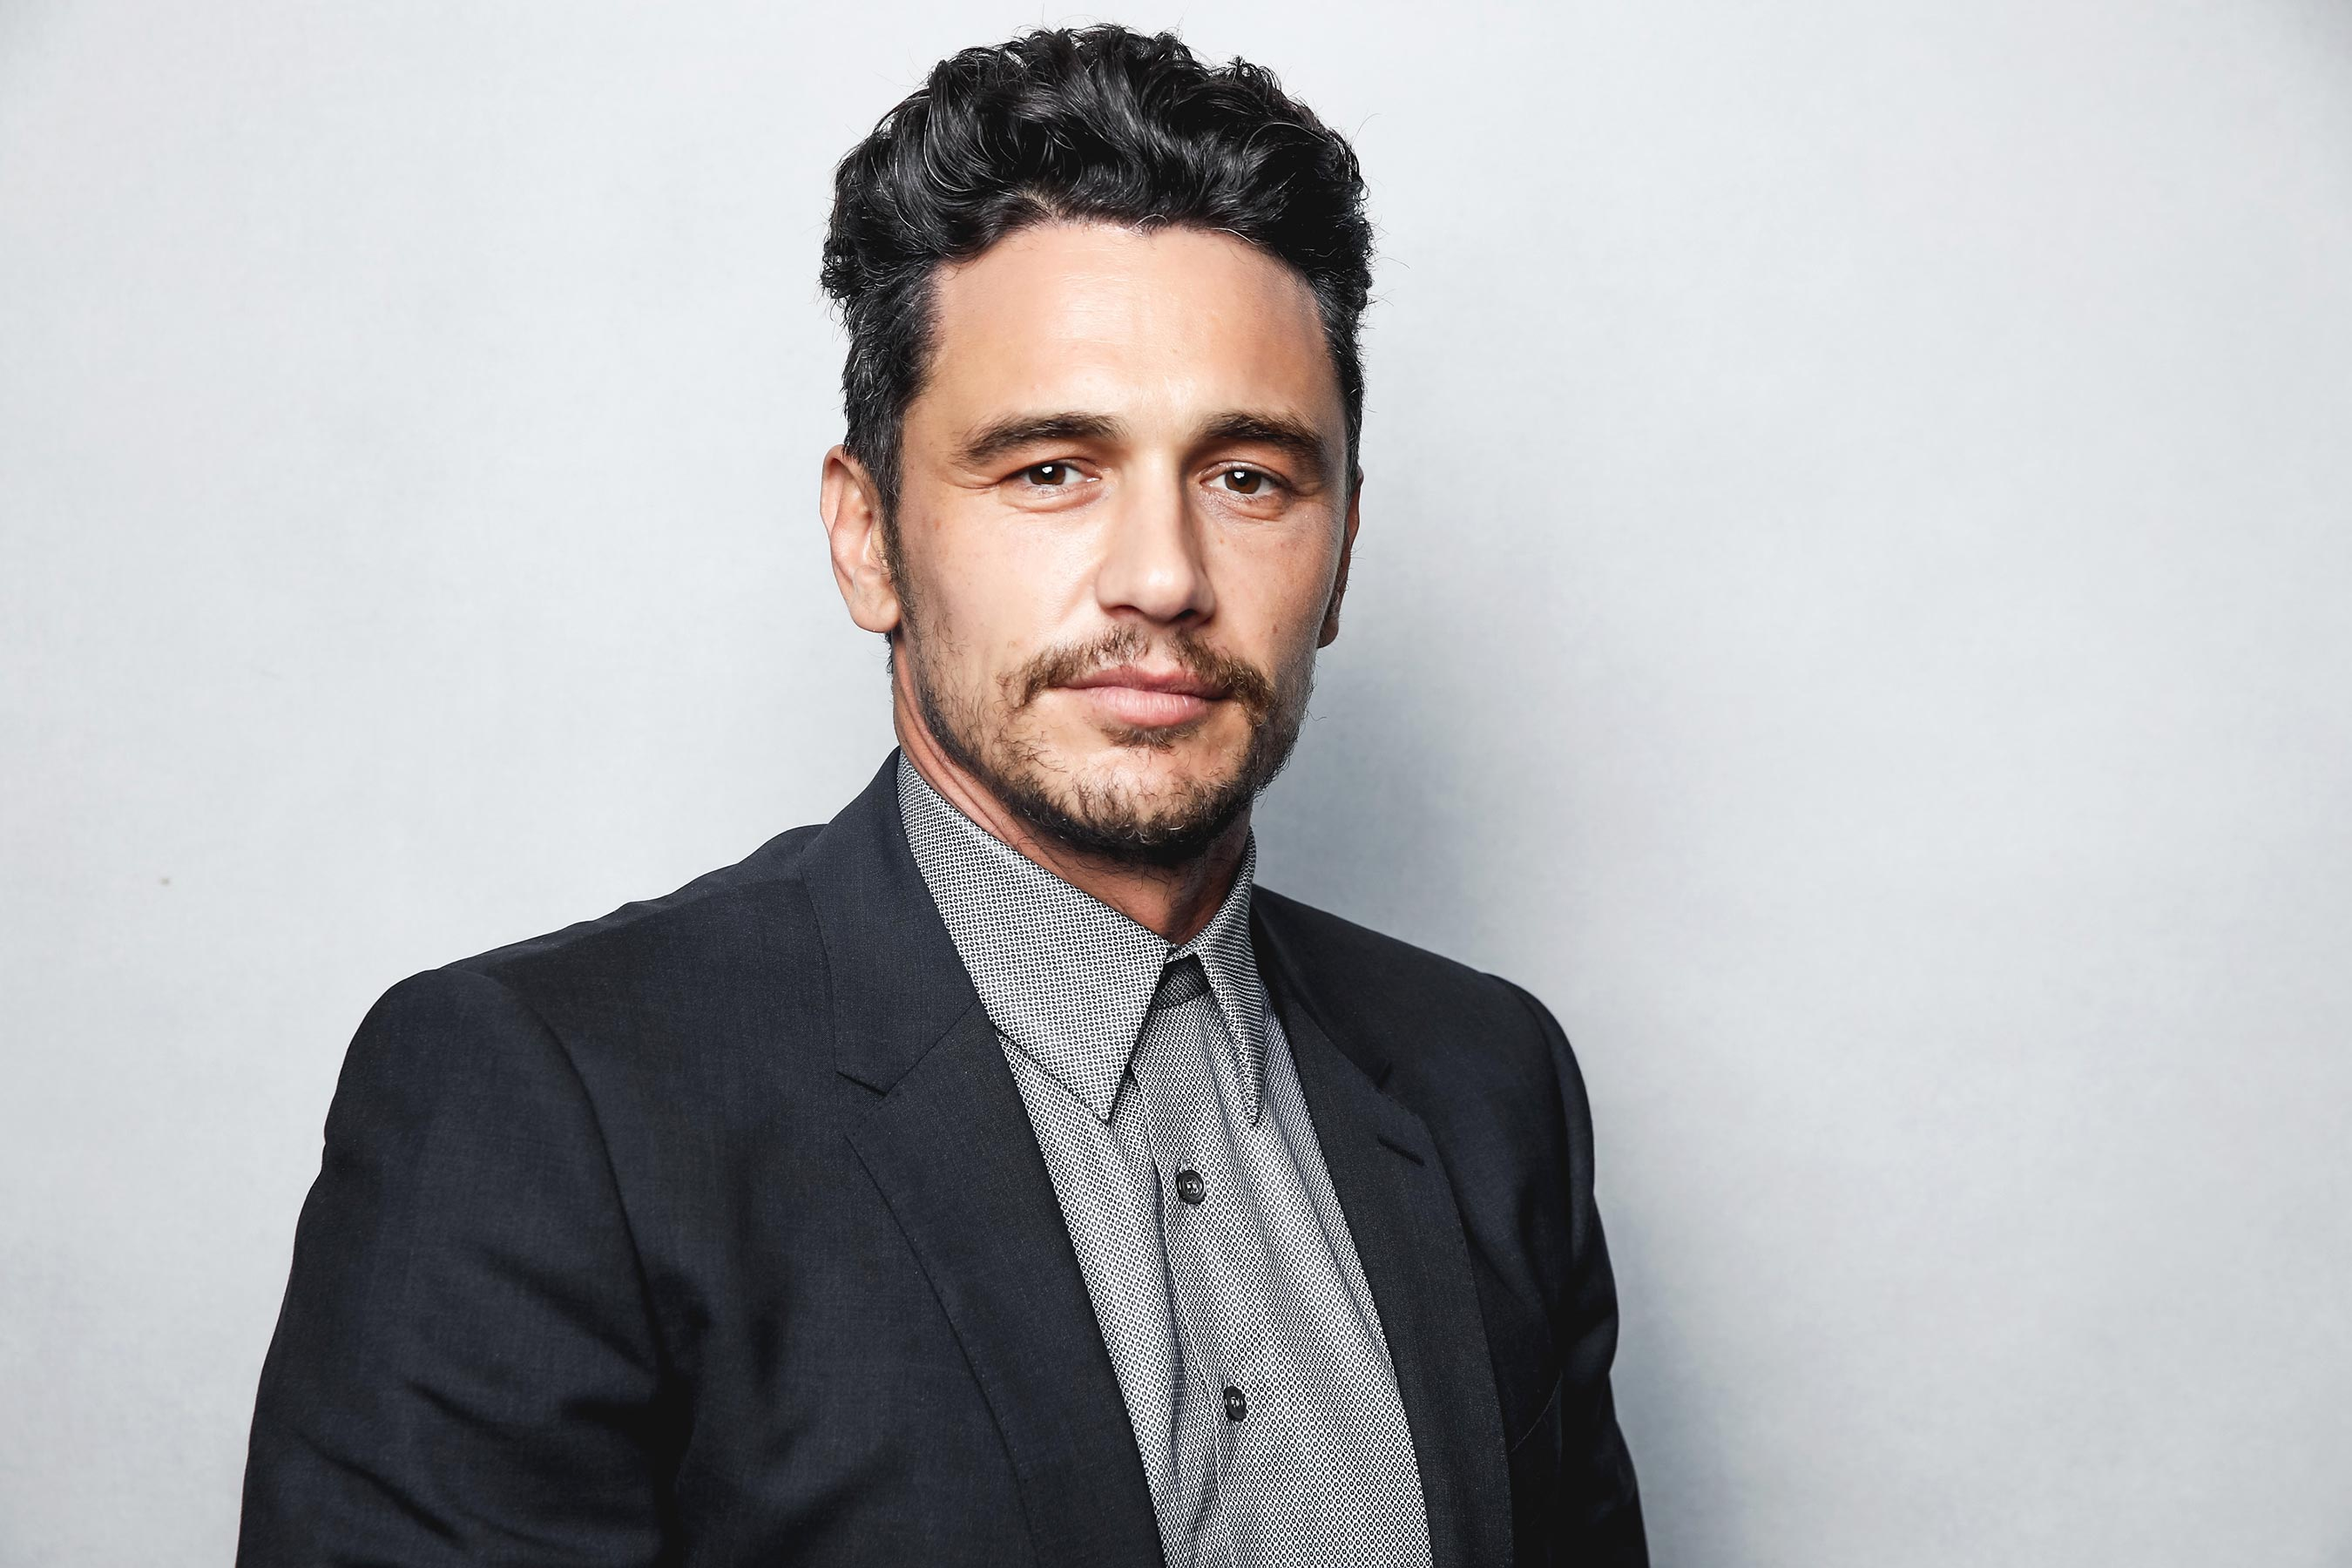 James Franco is an actor and also a film teacher at three universities